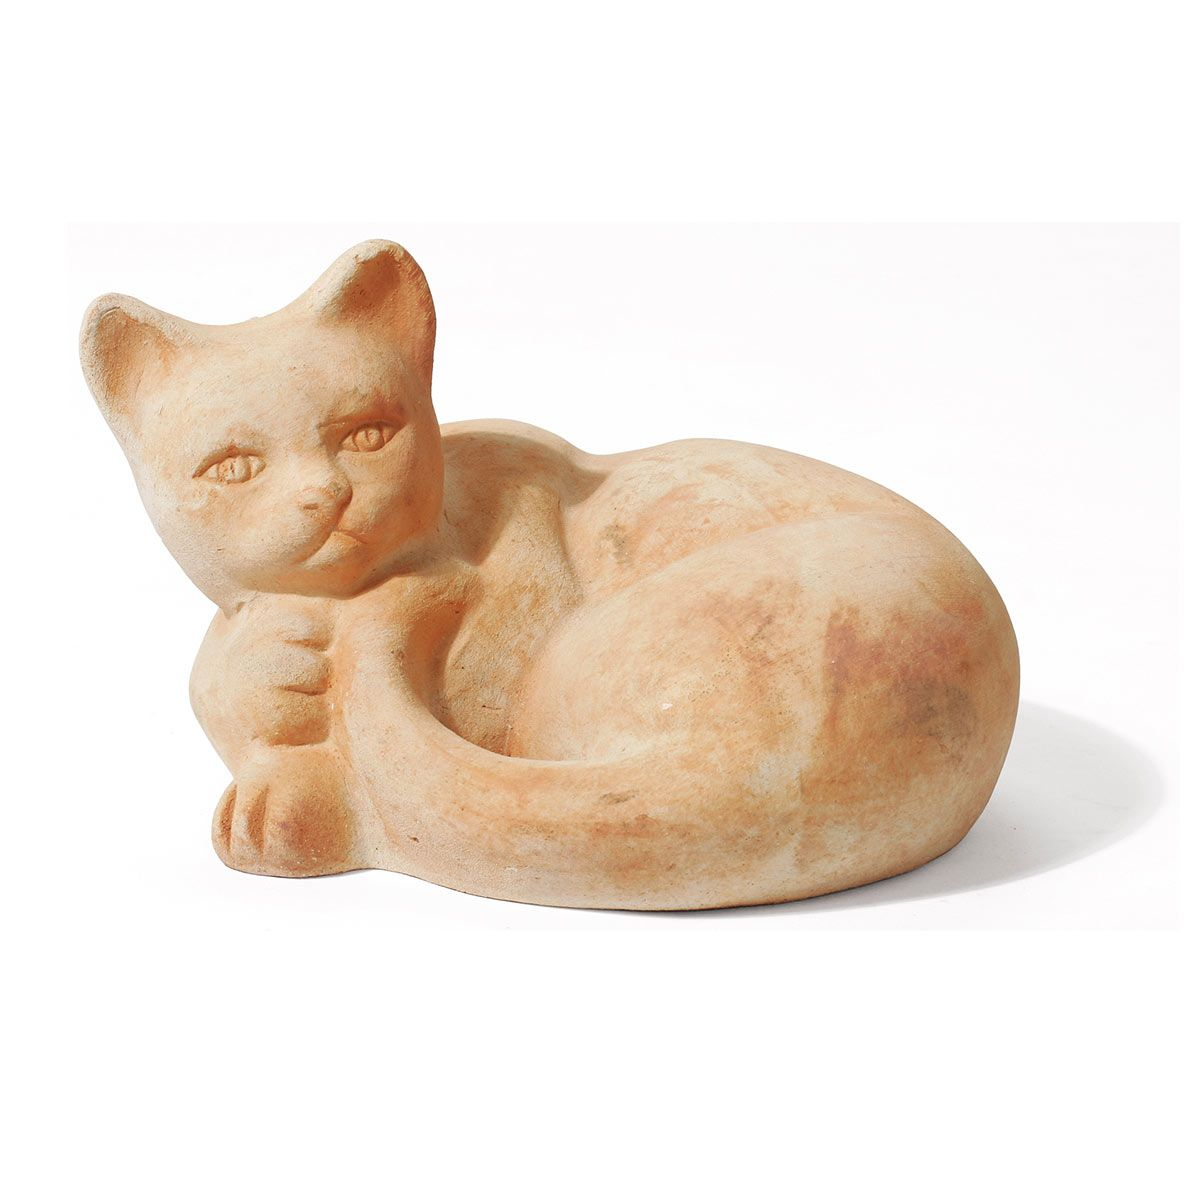 chat, en terre cuite, marron, 280 x 200 x 140 mm, 4 kg